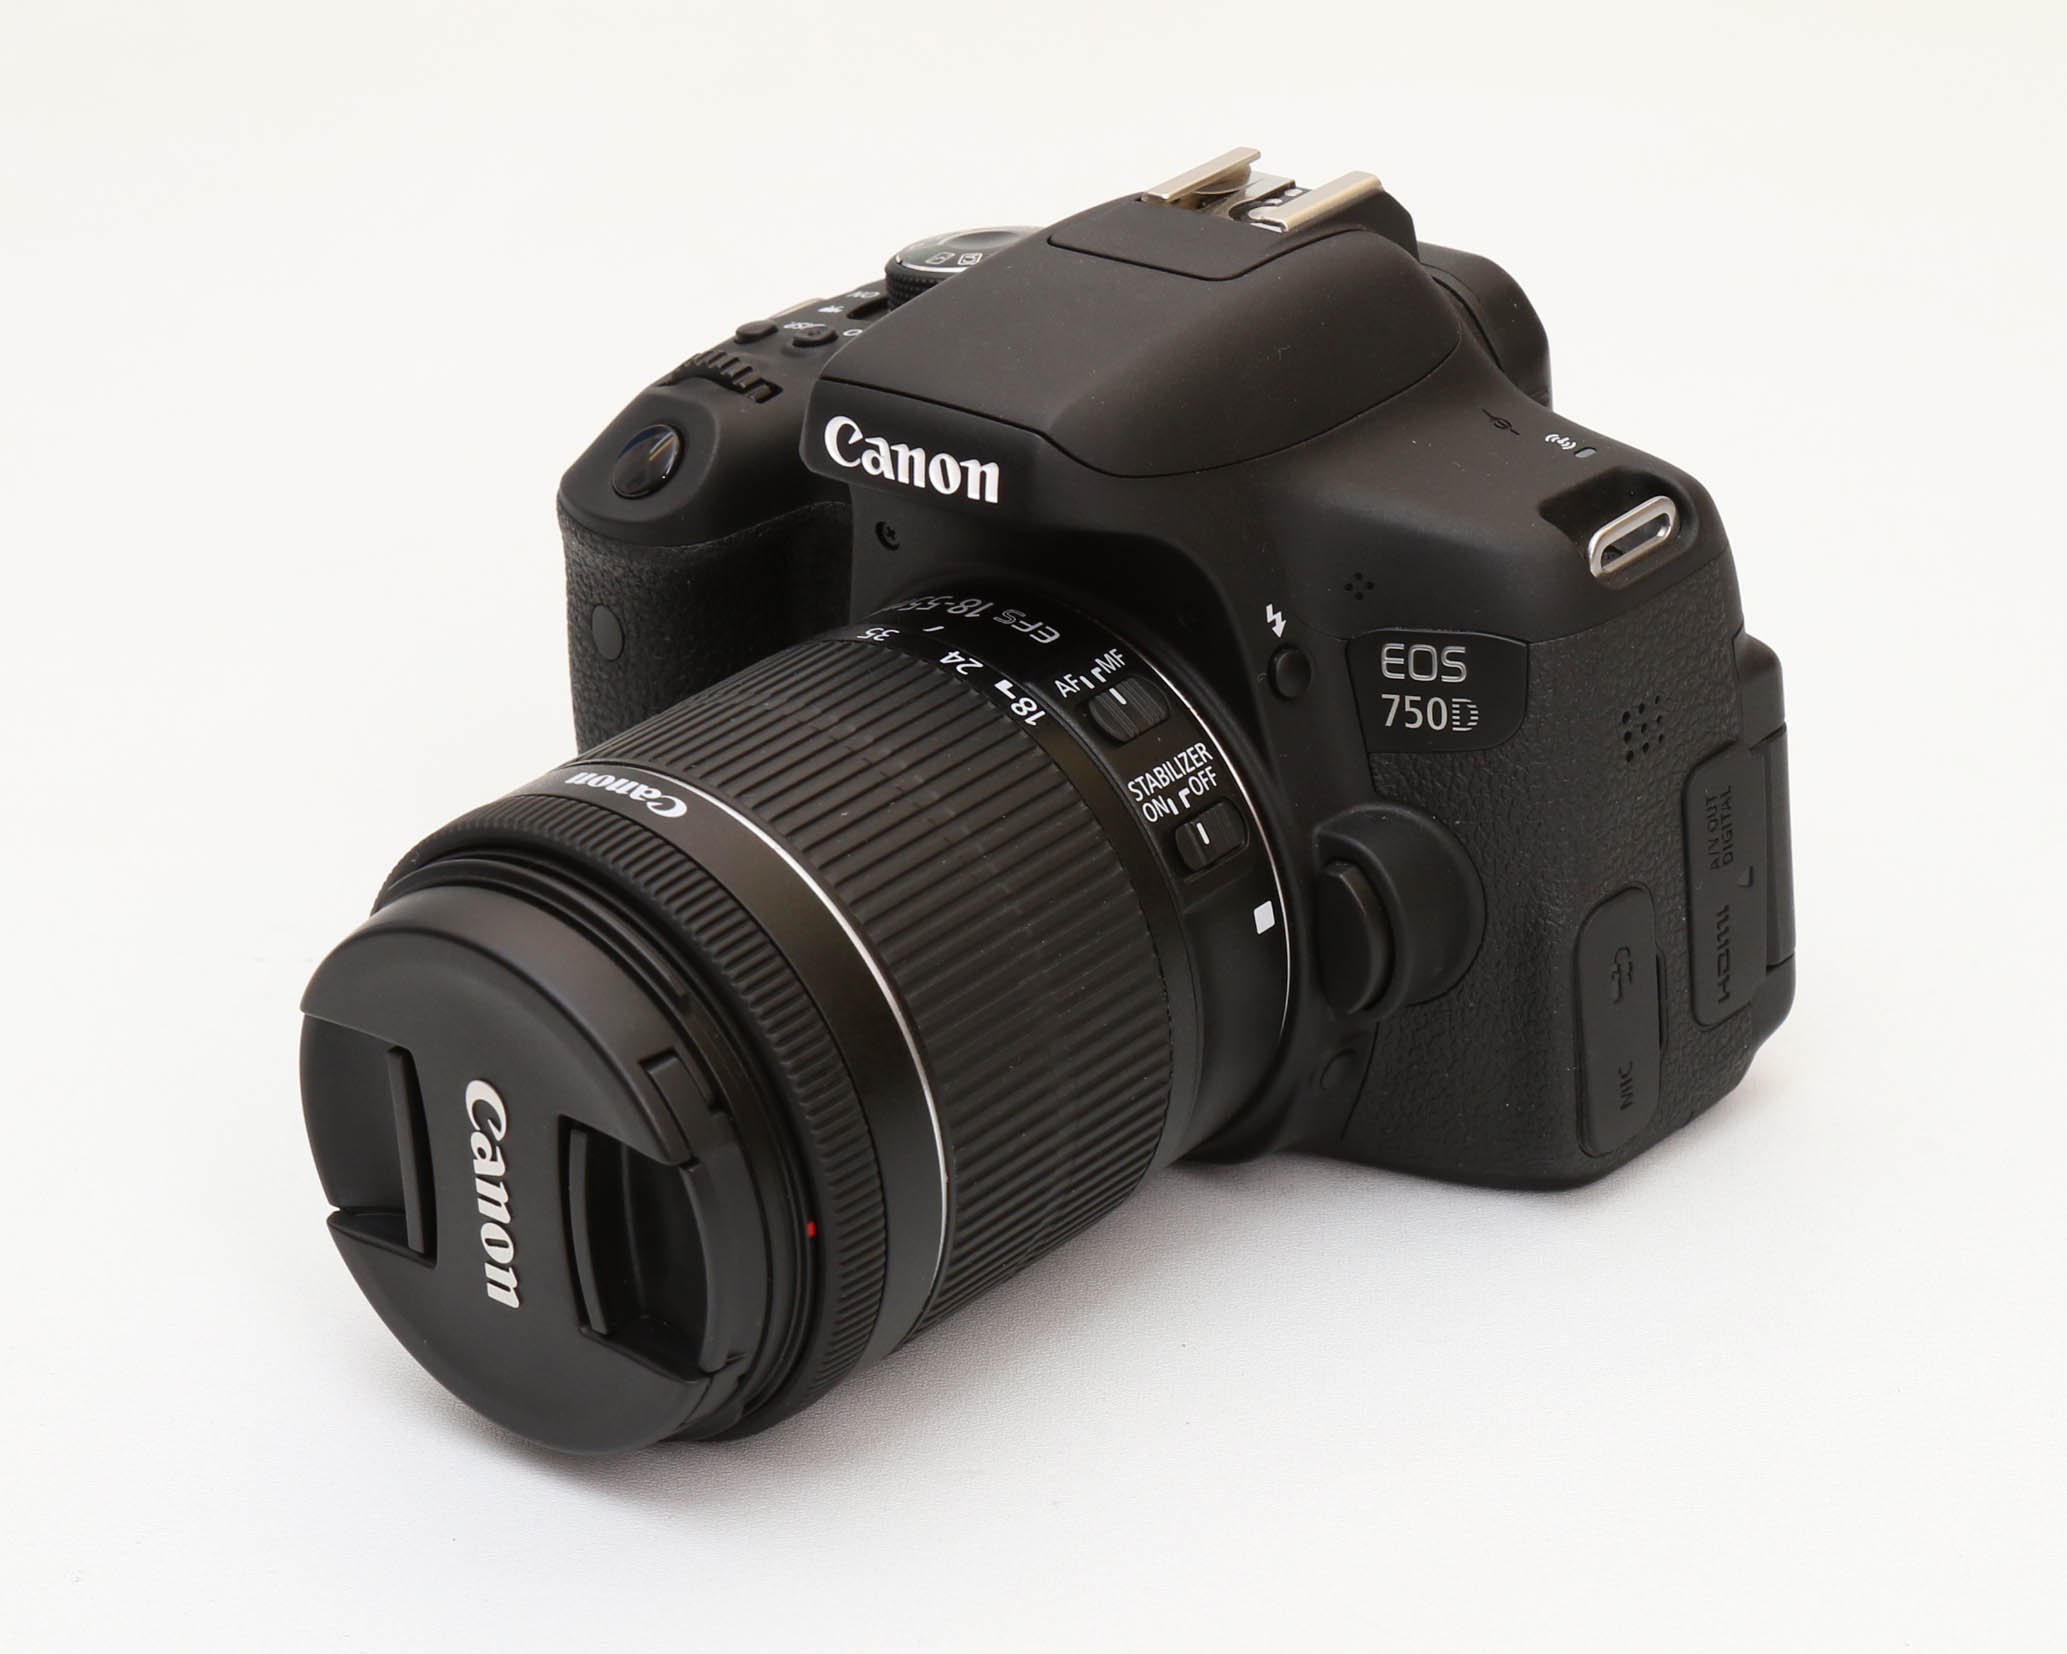 Canon 750D lens 18-55 IS STM